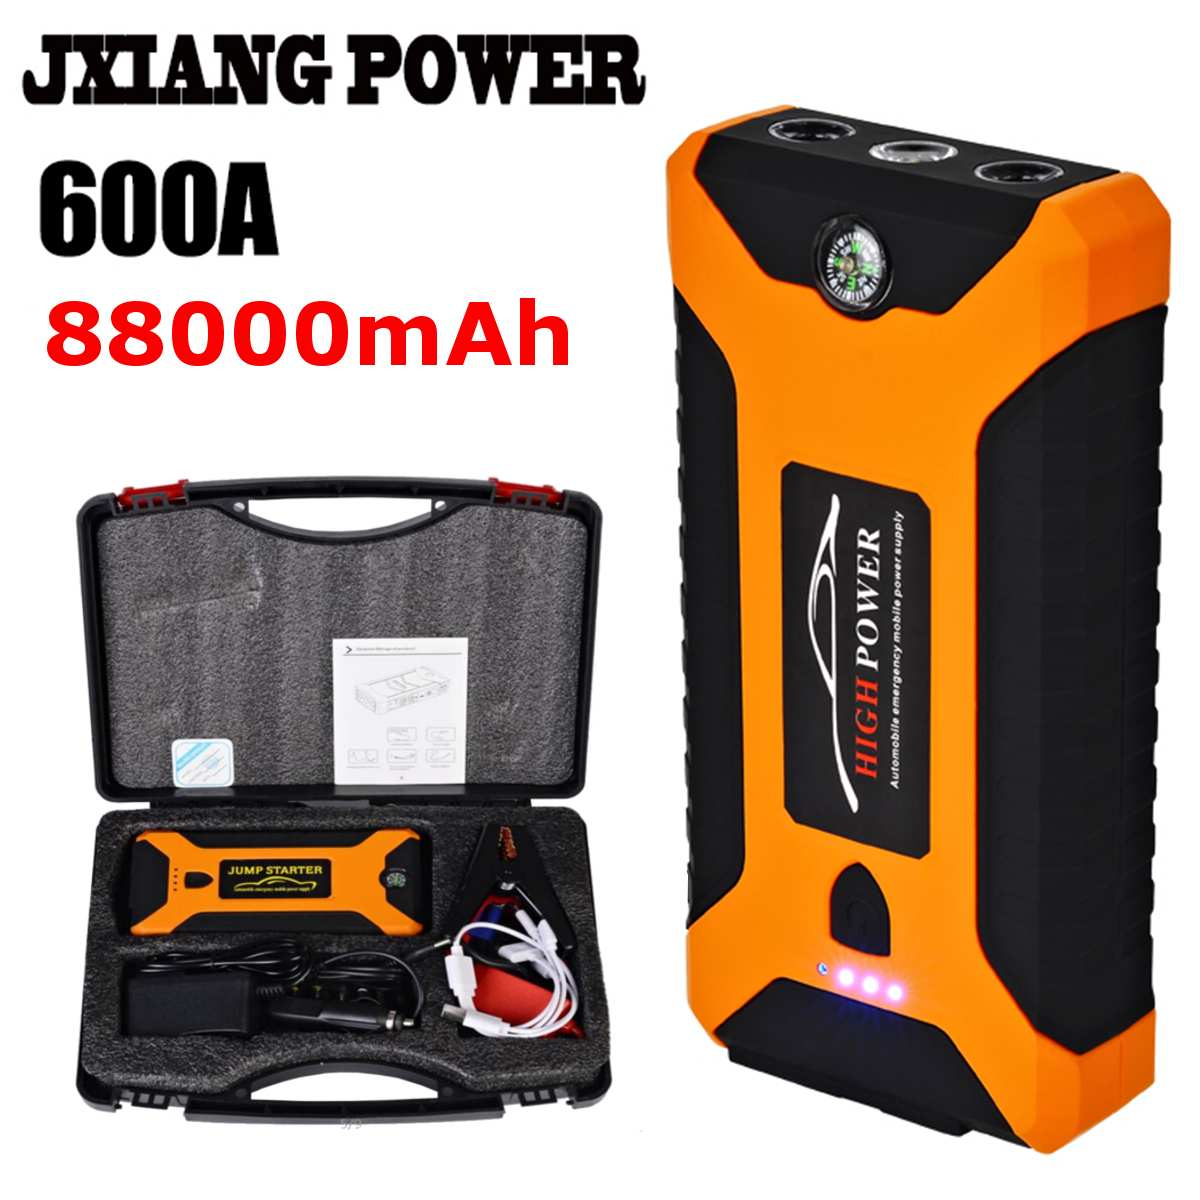 88000mAh Super Power Car Jump Starter Power Bank 600A Portable Car Battery Charger Booster Charger 4USB 12V SOS Starting Device88000mAh Super Power Car Jump Starter Power Bank 600A Portable Car Battery Charger Booster Charger 4USB 12V SOS Starting Device